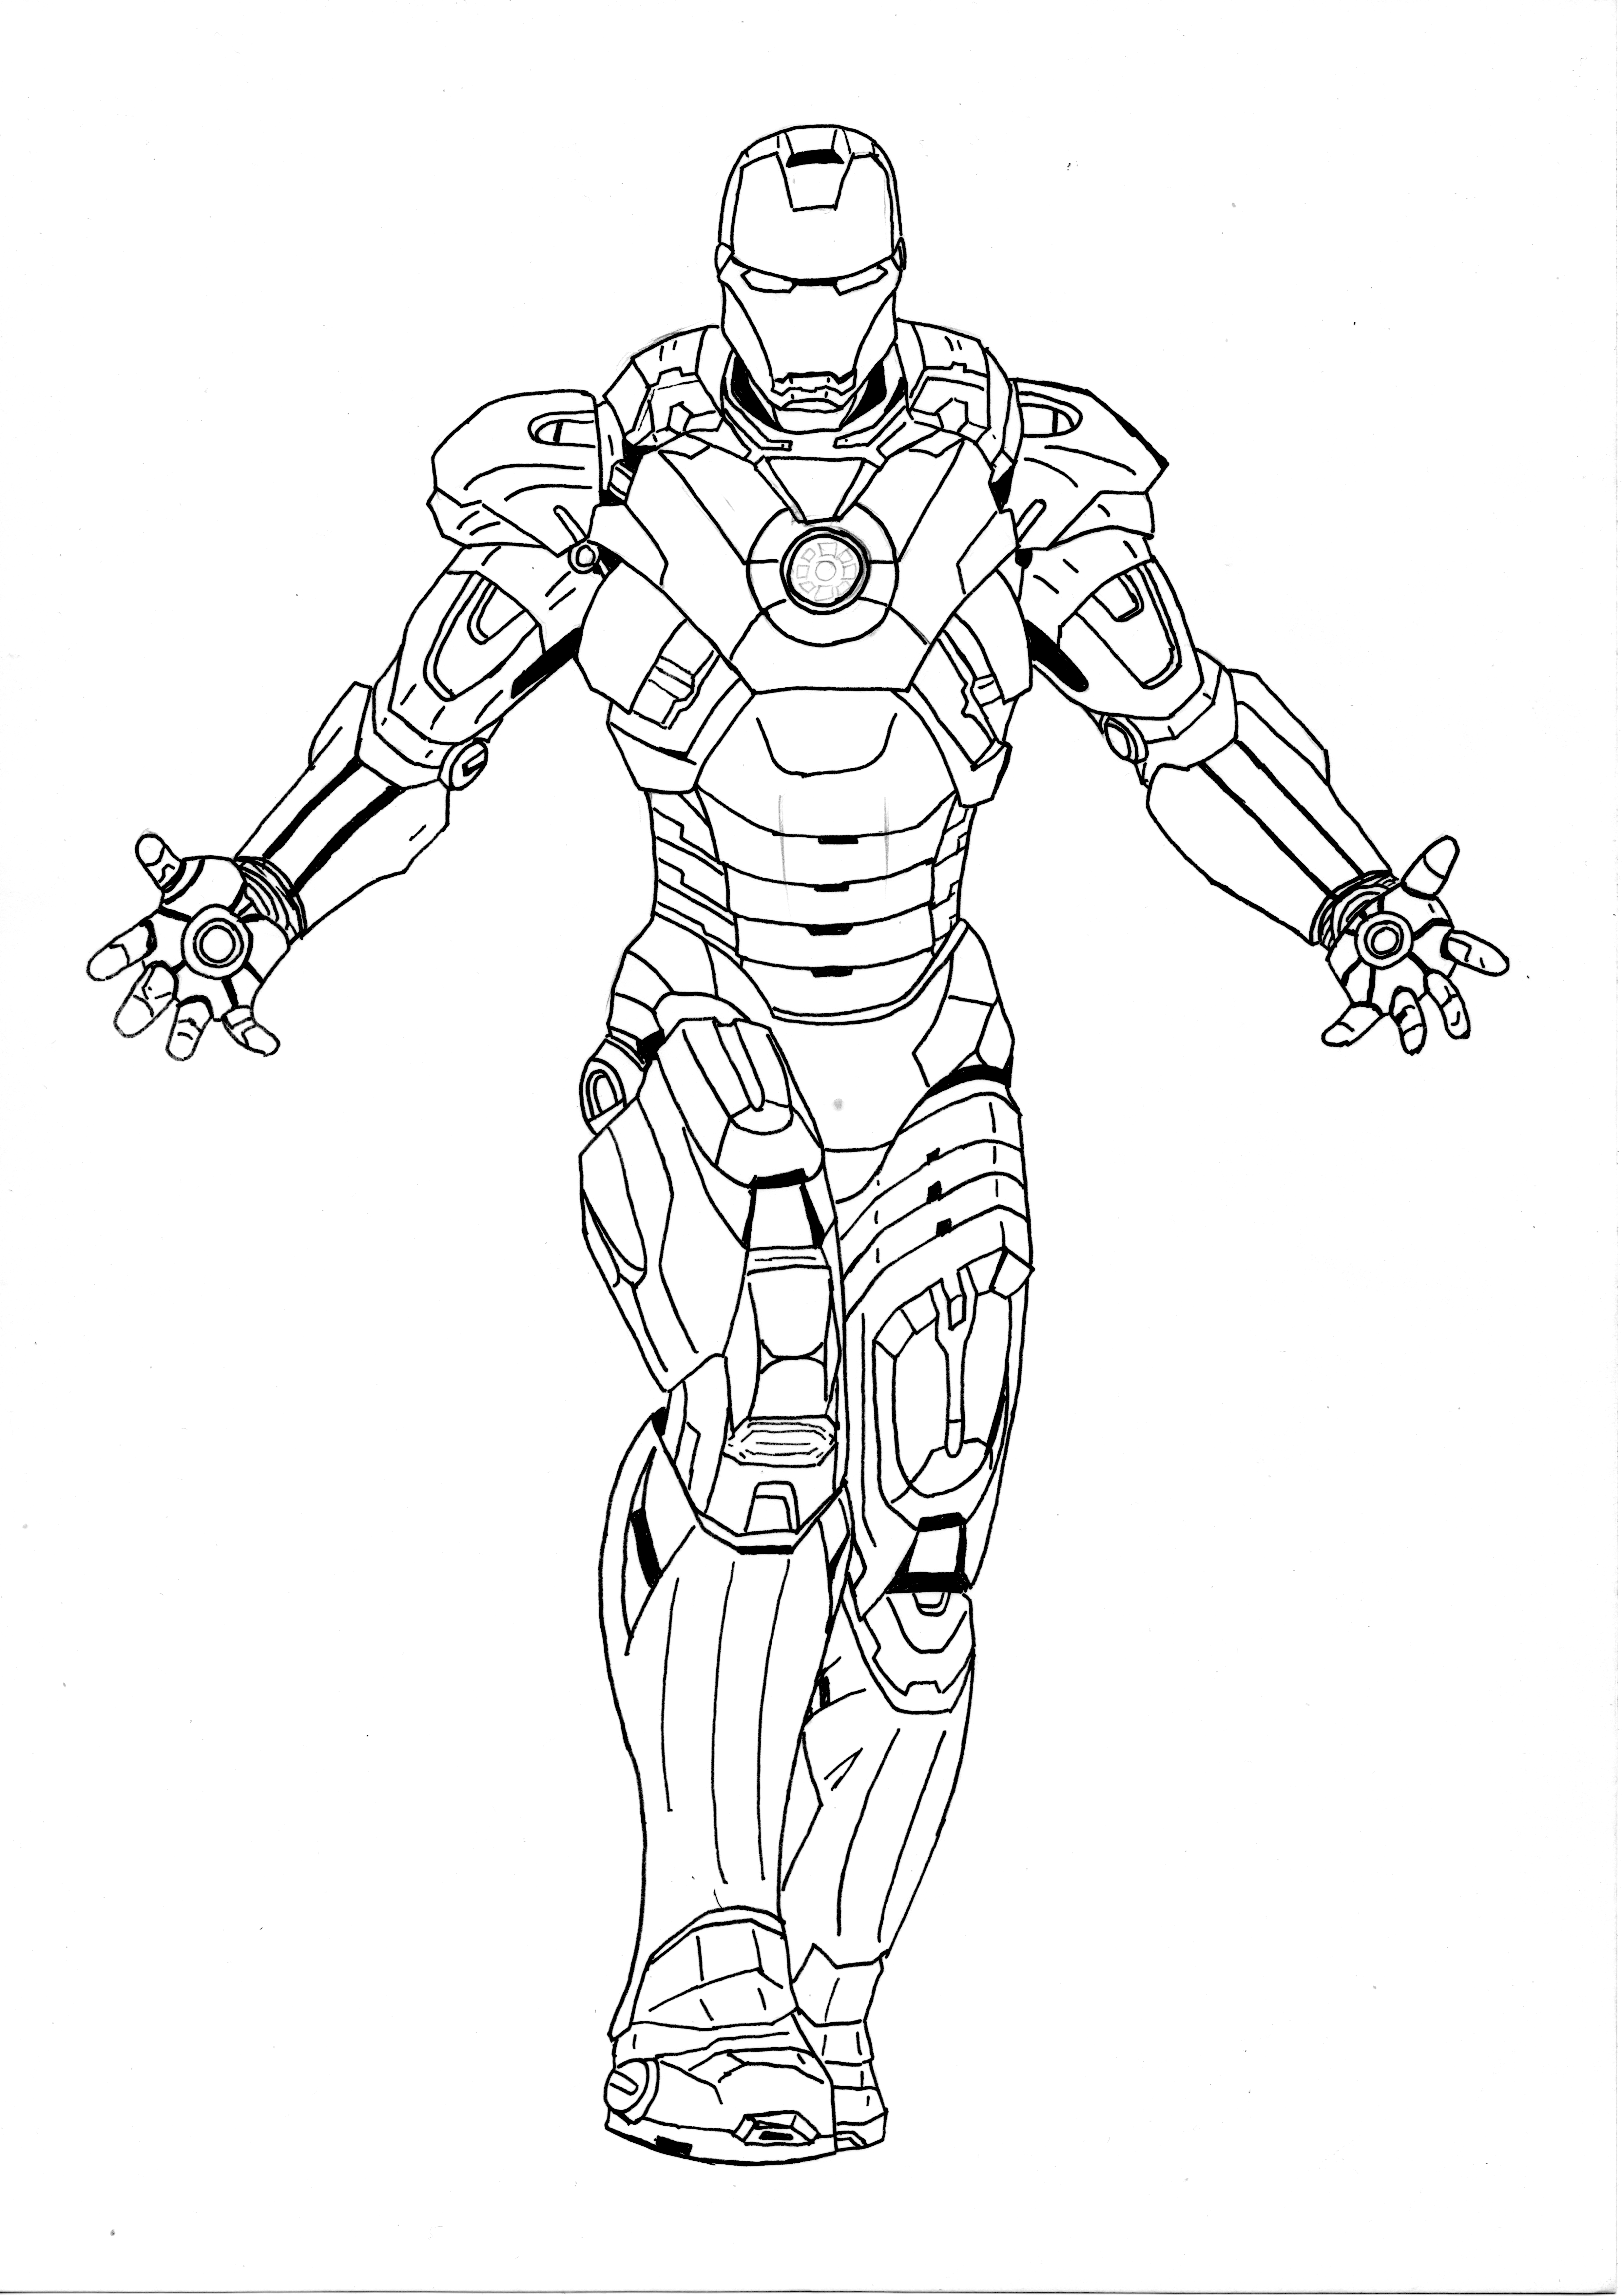 iron man coloring picture iron man to color for children iron man kids coloring pages iron man picture coloring